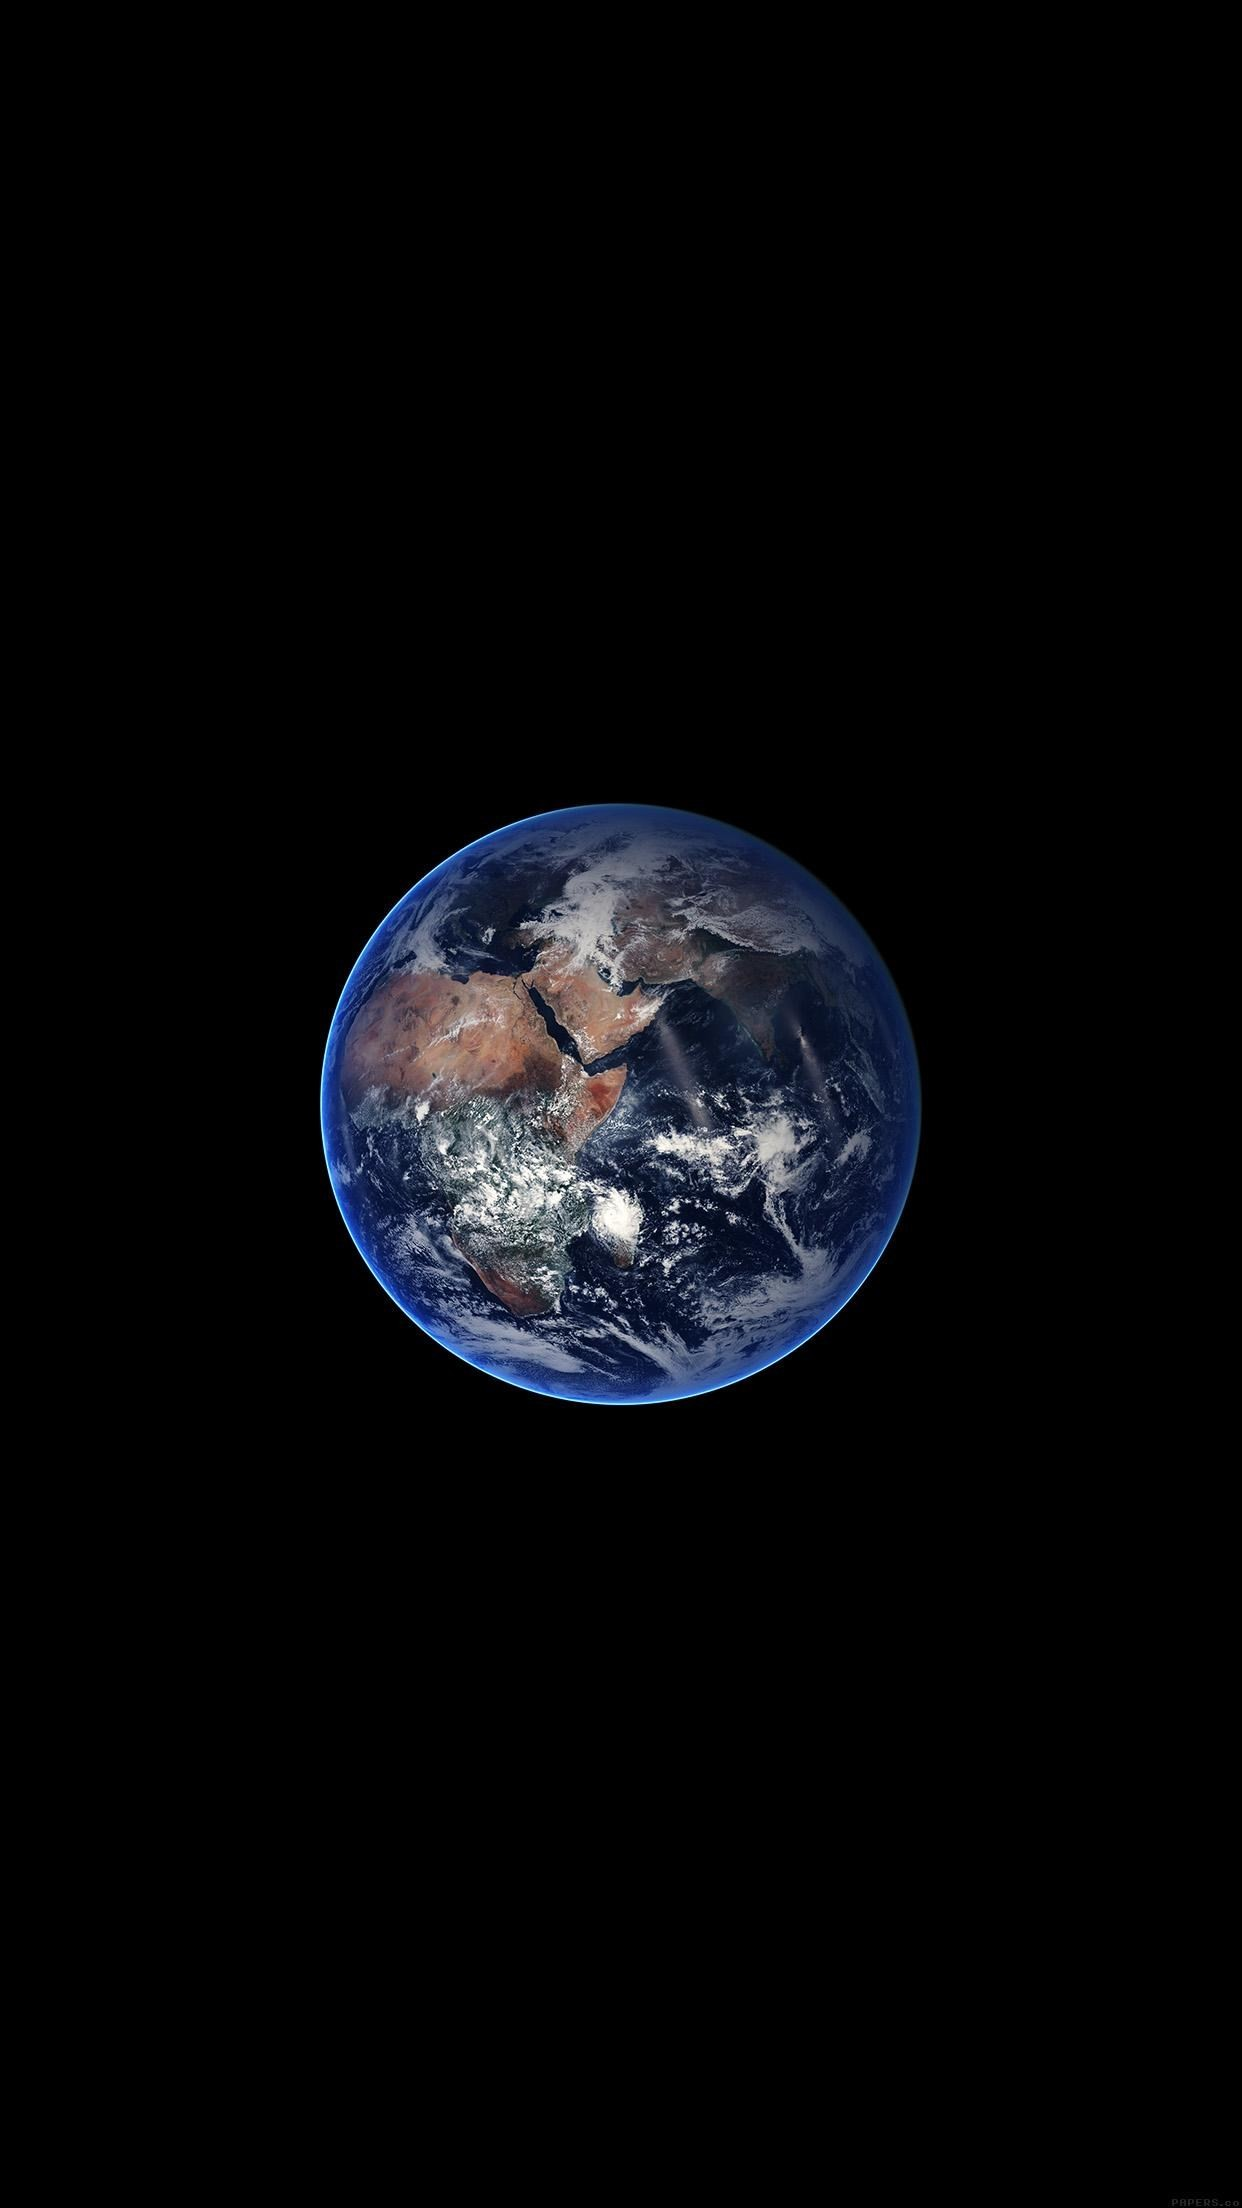 the earth iphone wallpaper …